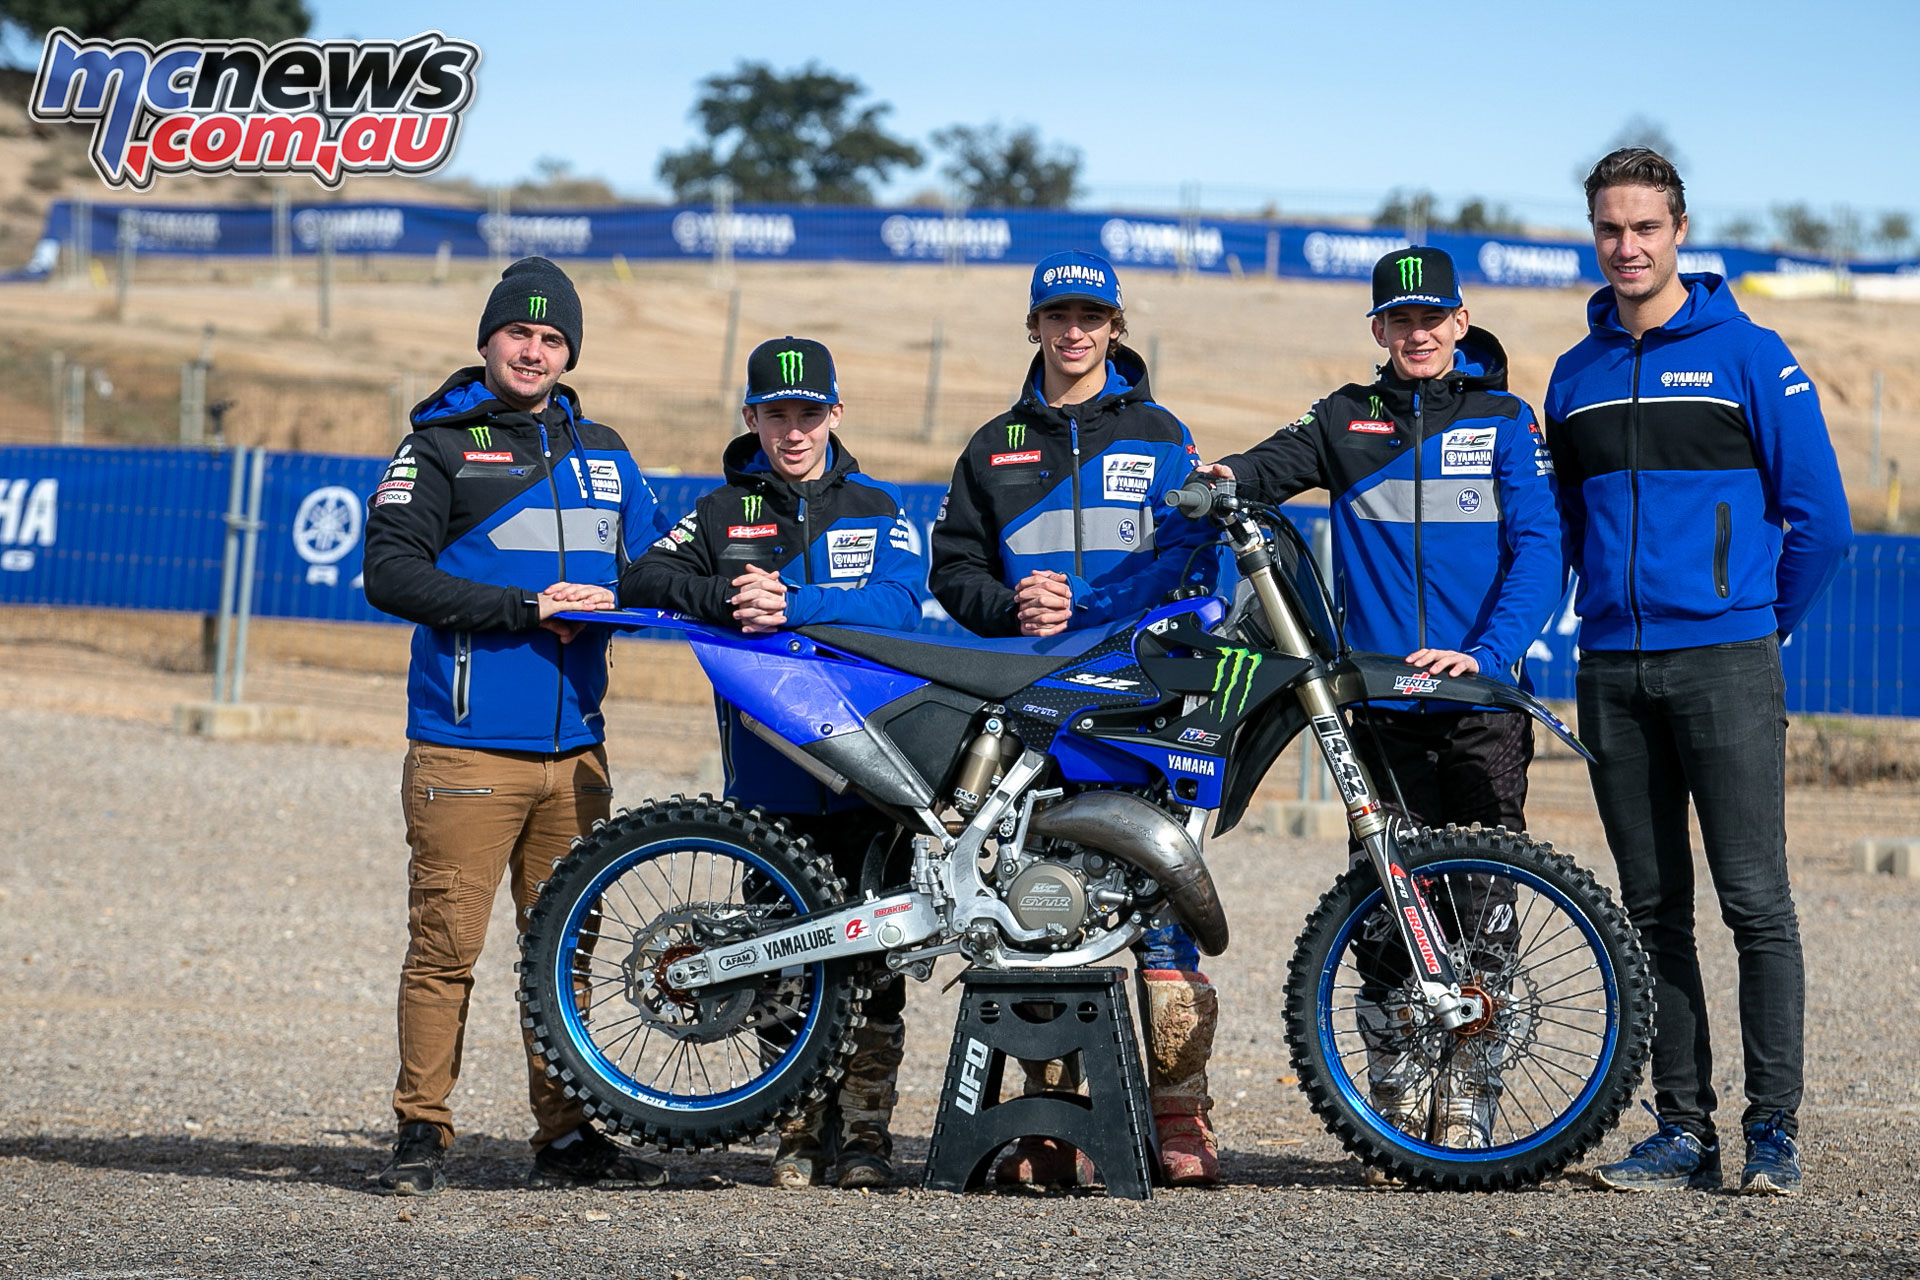 MJC Yamaha Official EMX riders announced